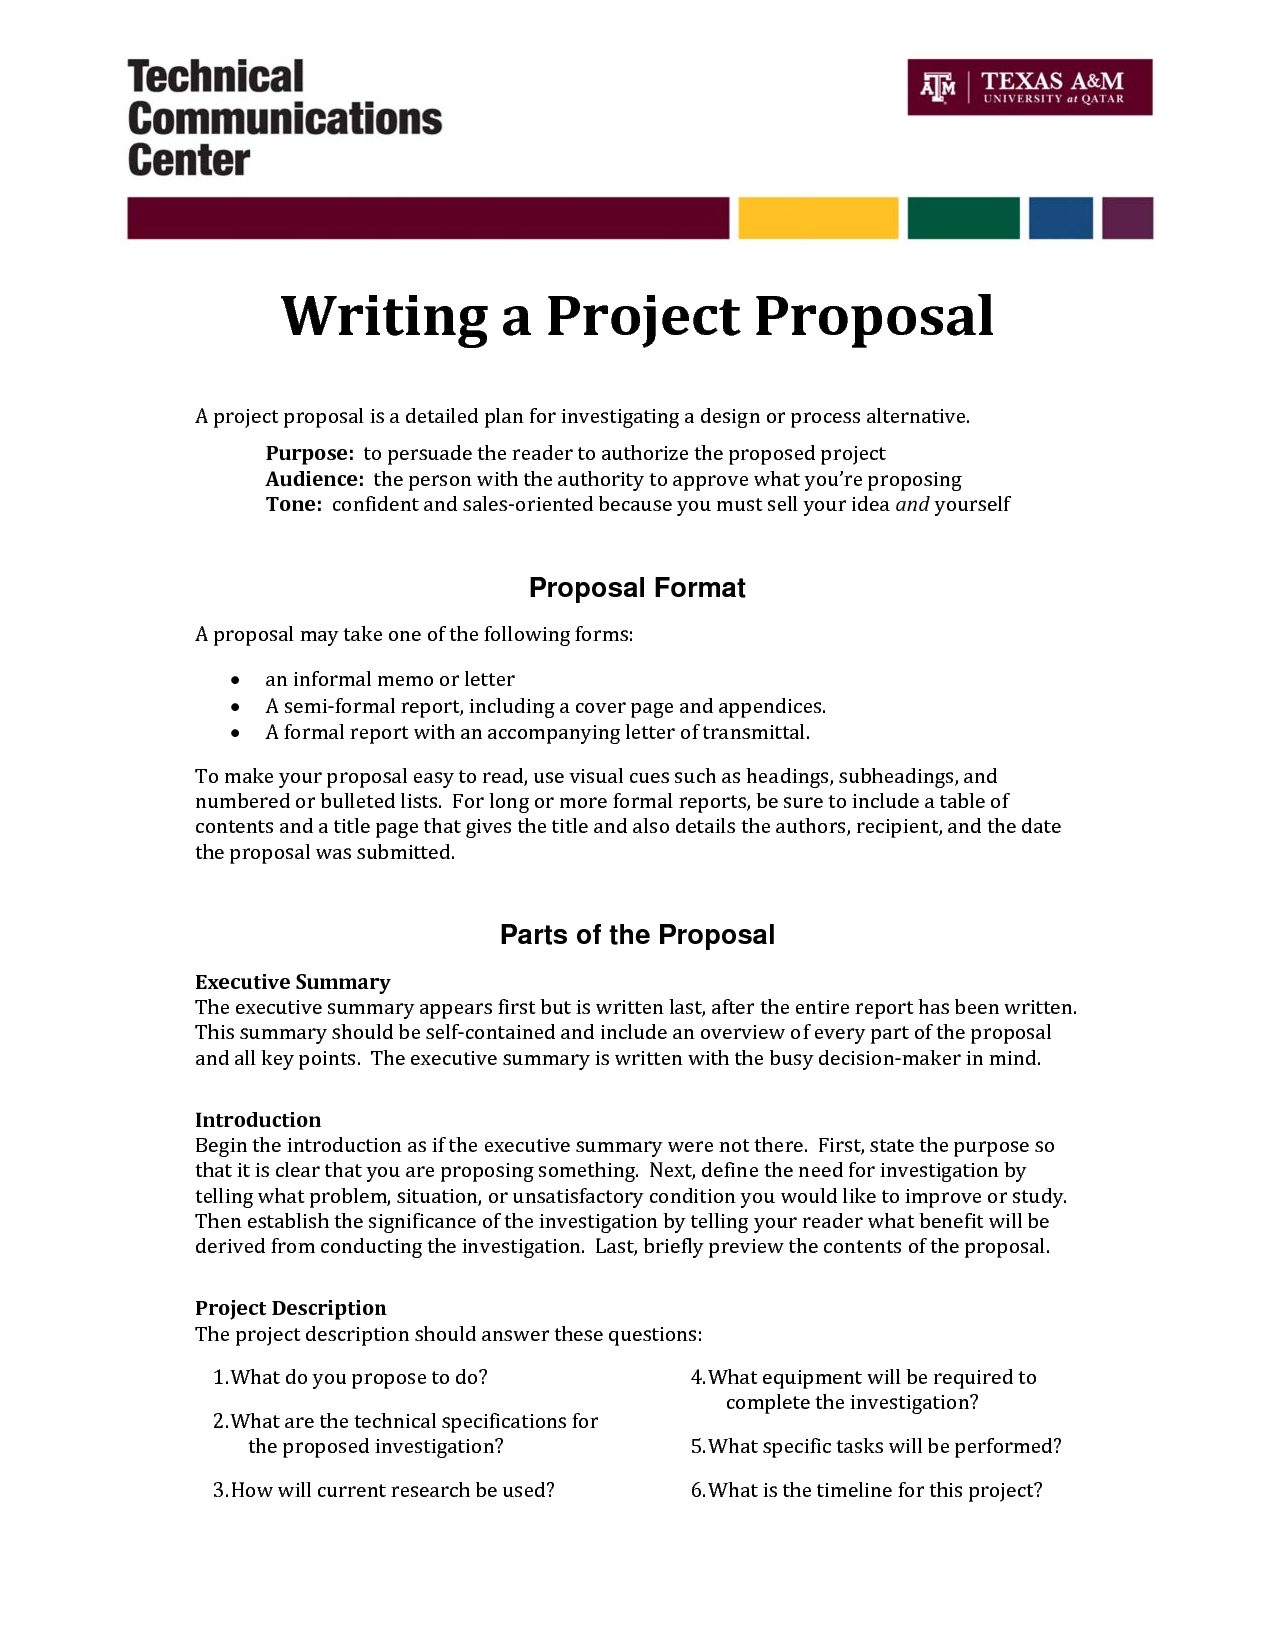 Informal Proposal Letter Example | Writing A Project Proposal A Project  Proposal Is A Detailed  Example Of A Proposal Letter